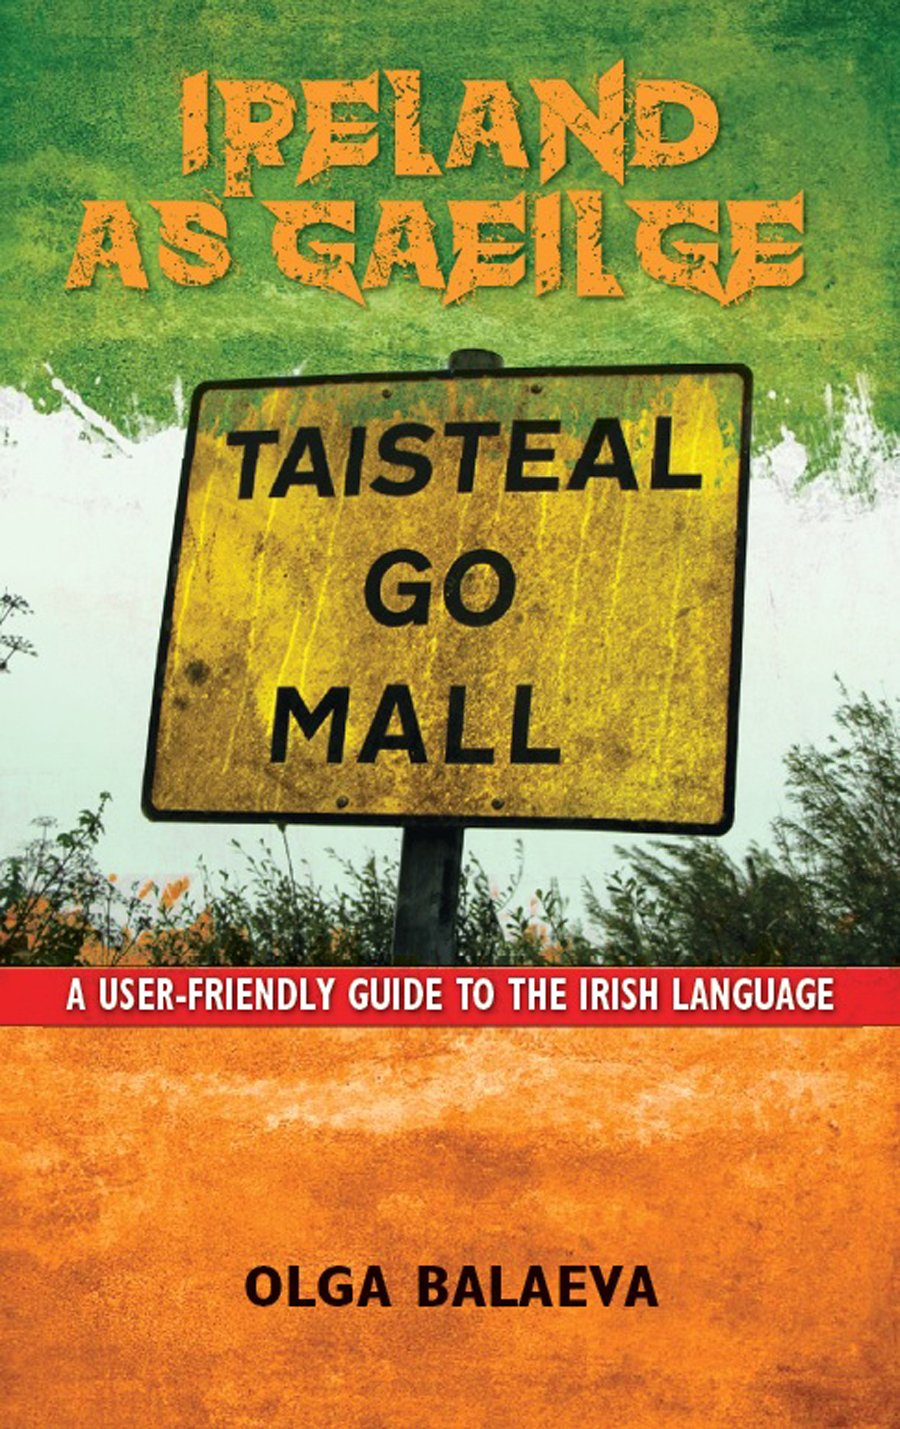 Ireland as Gaeilge: A User-Friendly Guide to the Irish Language